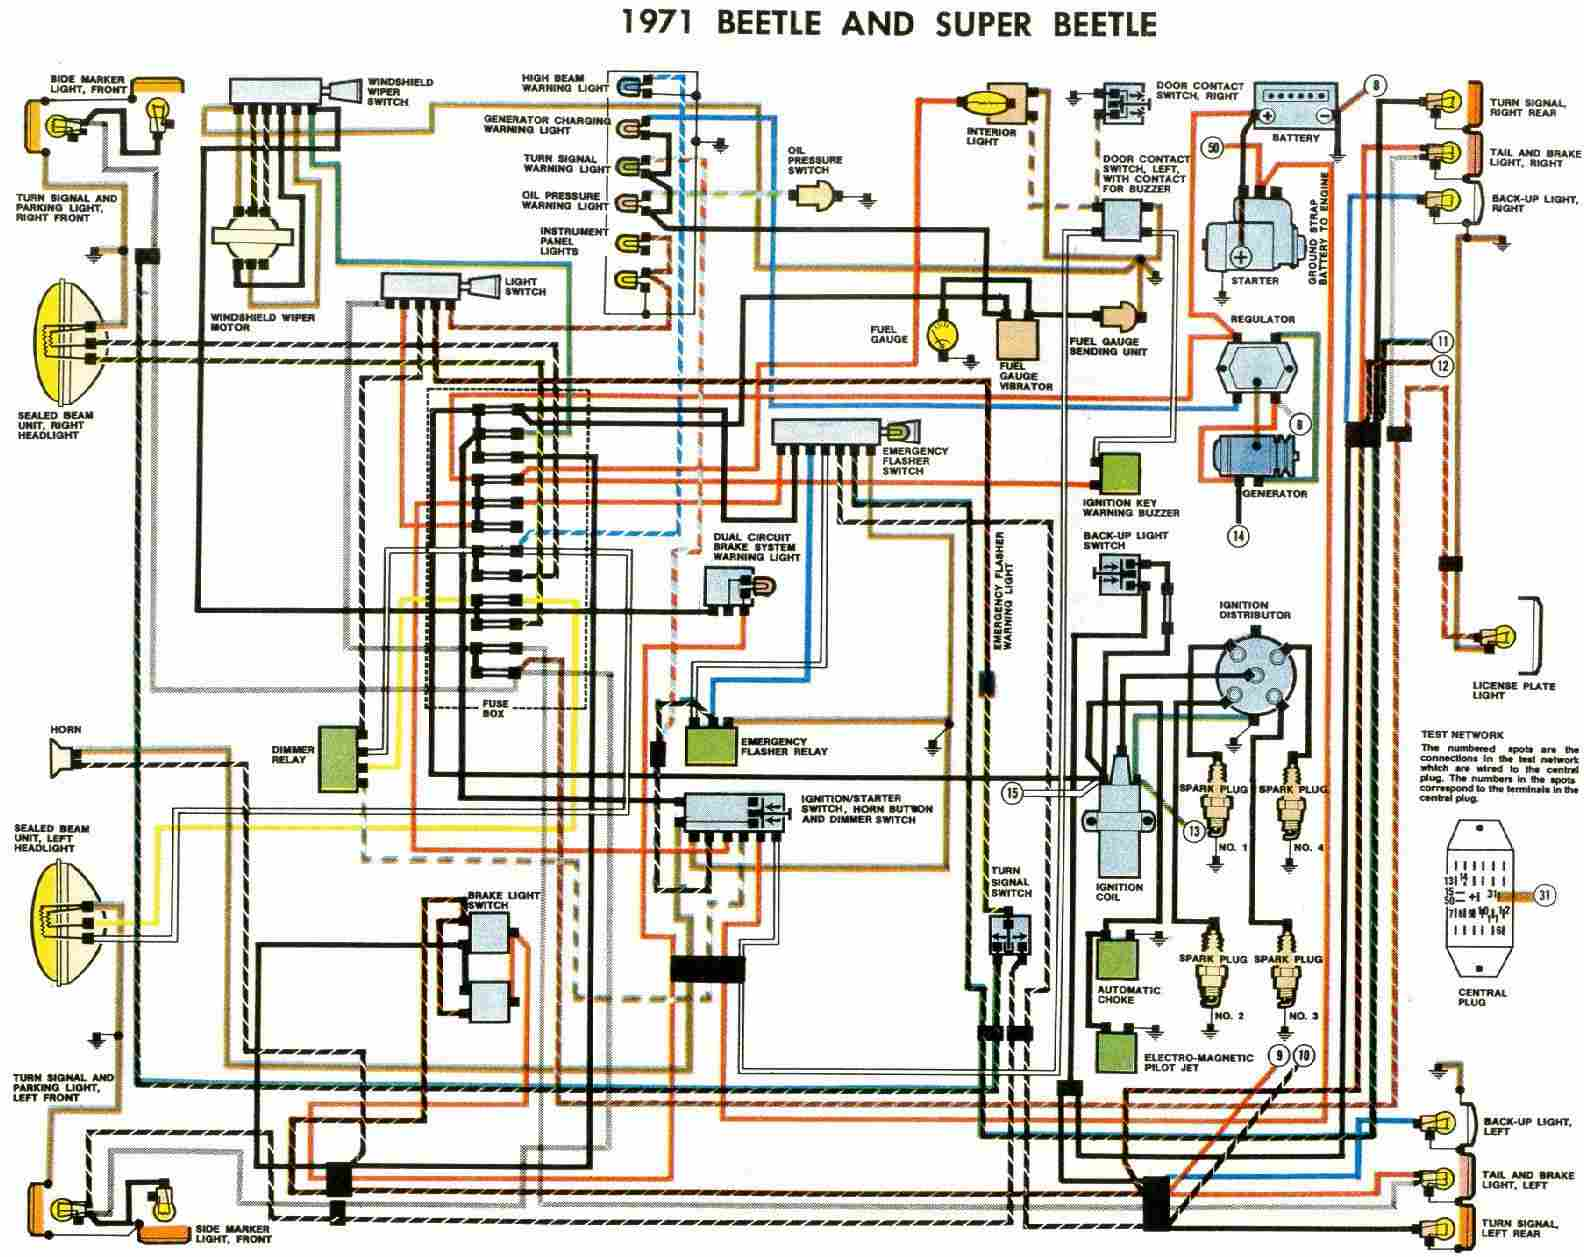 vw beetle and super beetle 1971 electrical wiring diagram ... 1974 vw sand rail wiring diagrams